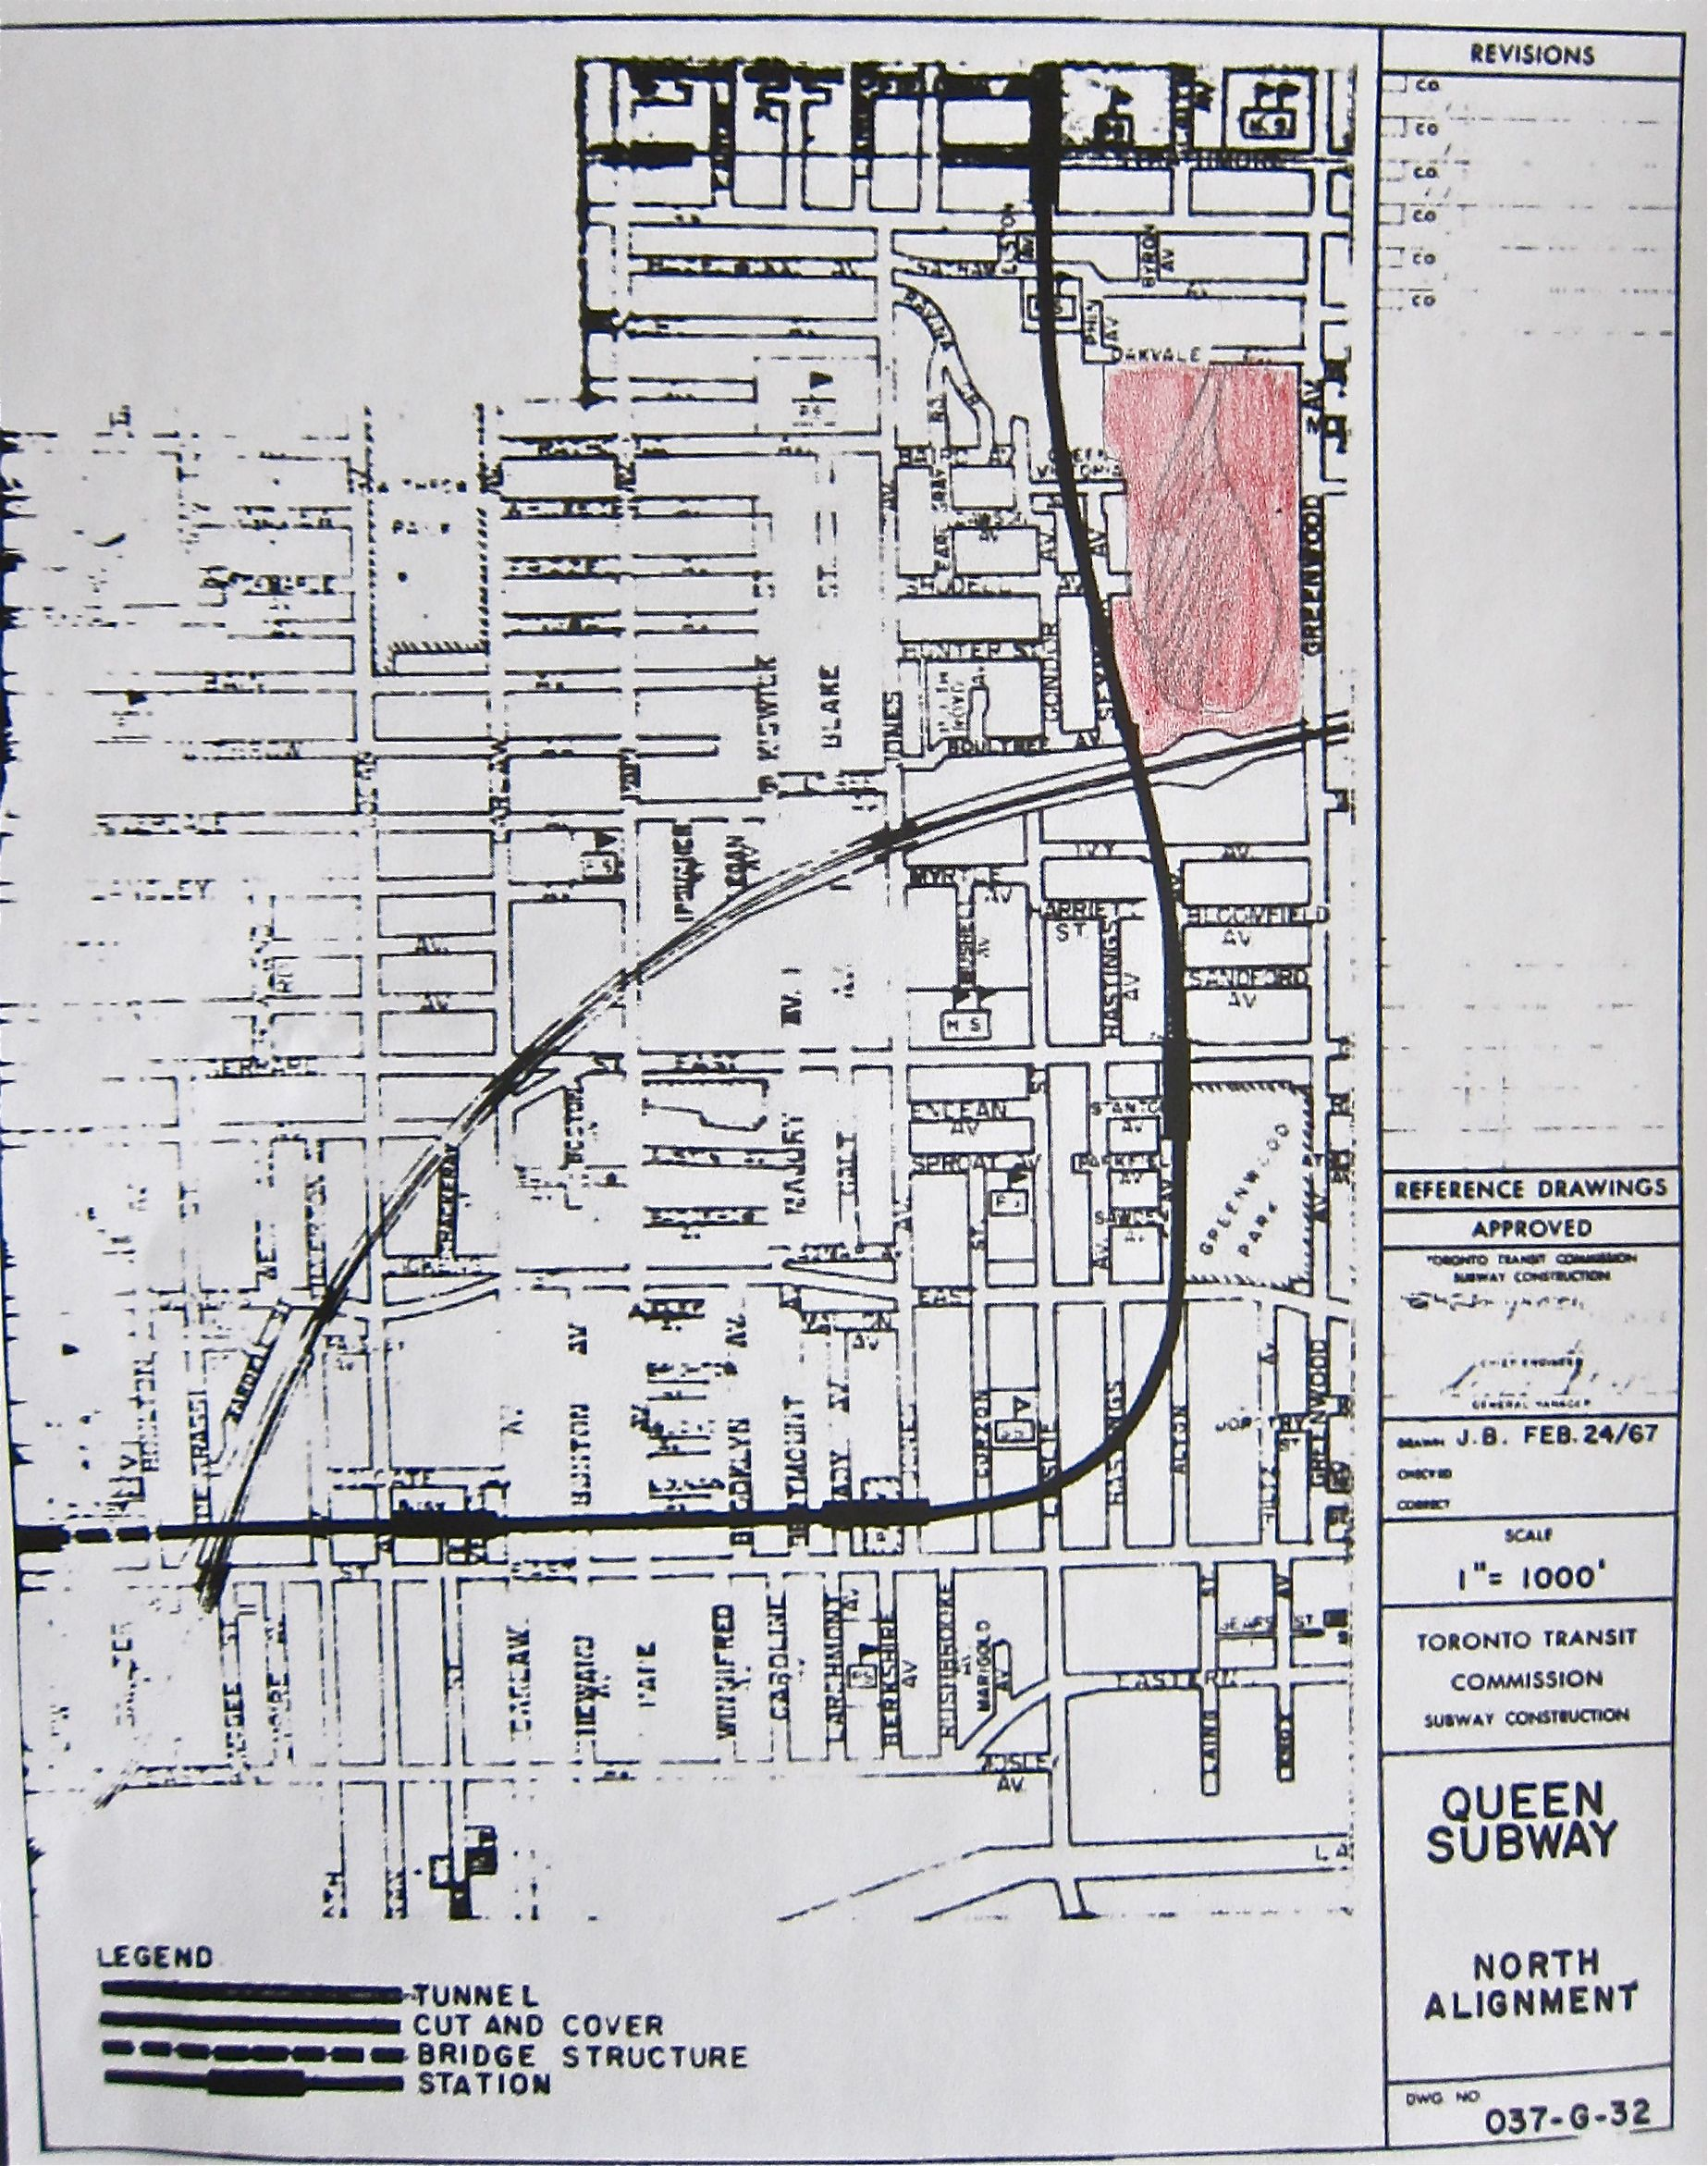 Greenwood yards are indicated in pink and the connection with the Bloor-Danforth is at Donlands station in this 1968 plan.